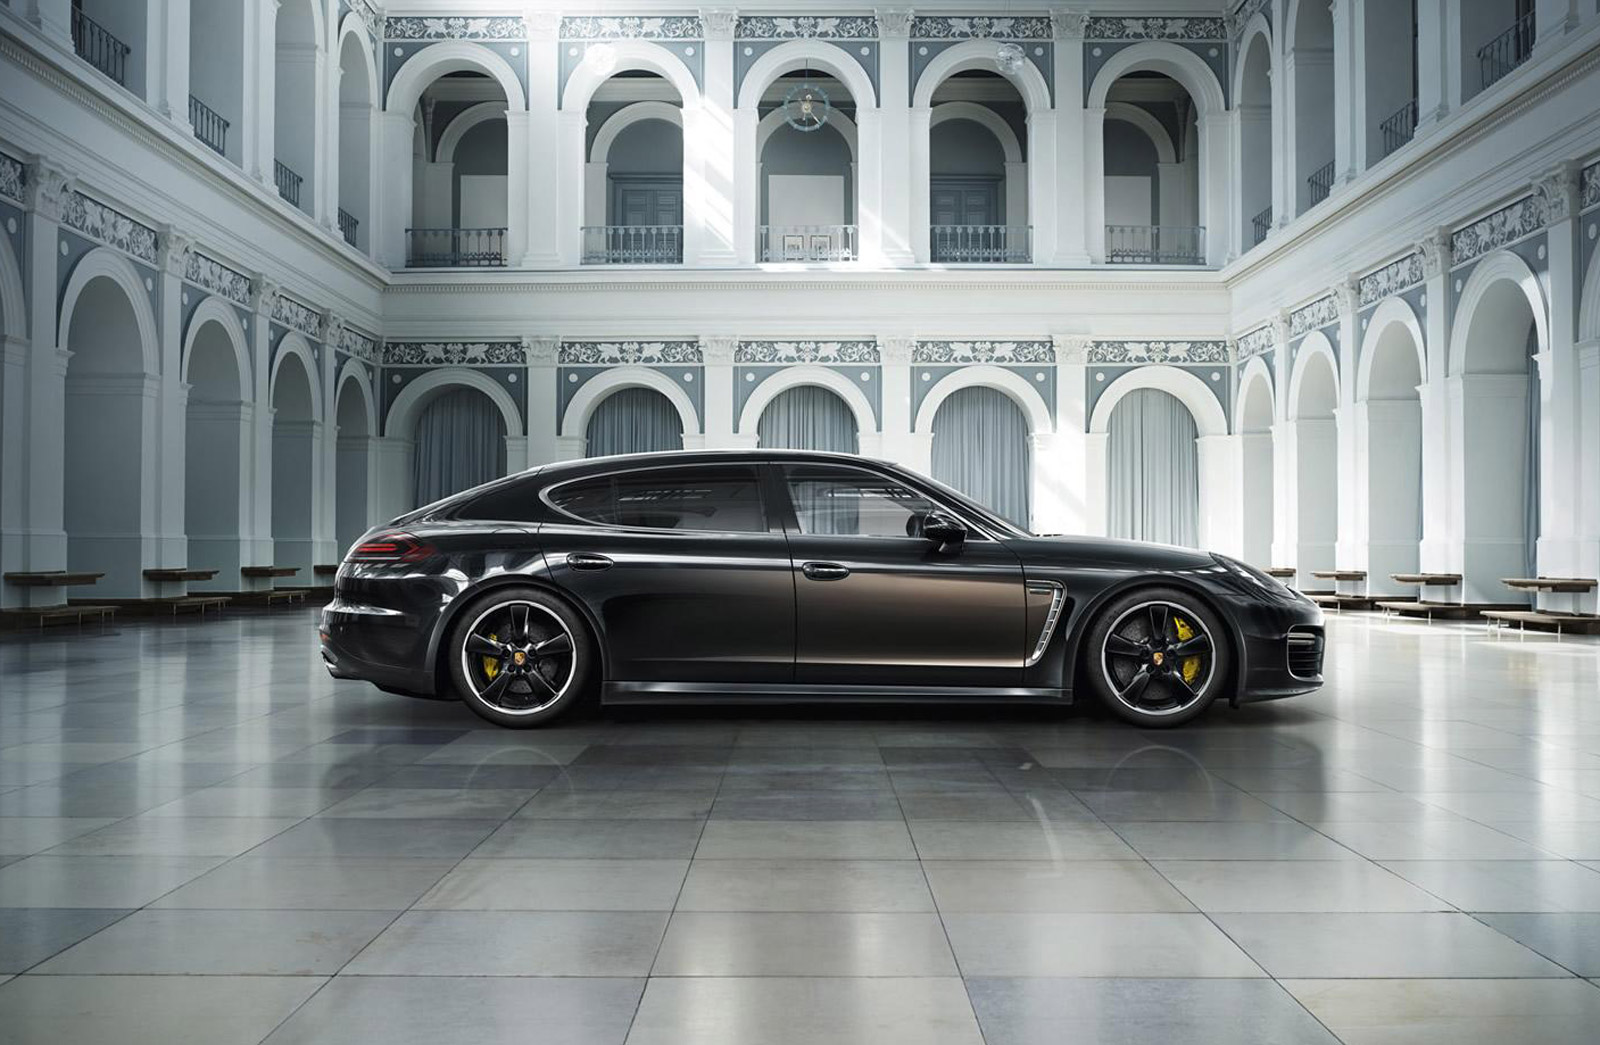 Porsche Panamera Turbo S Executive Gets Exclusive Series